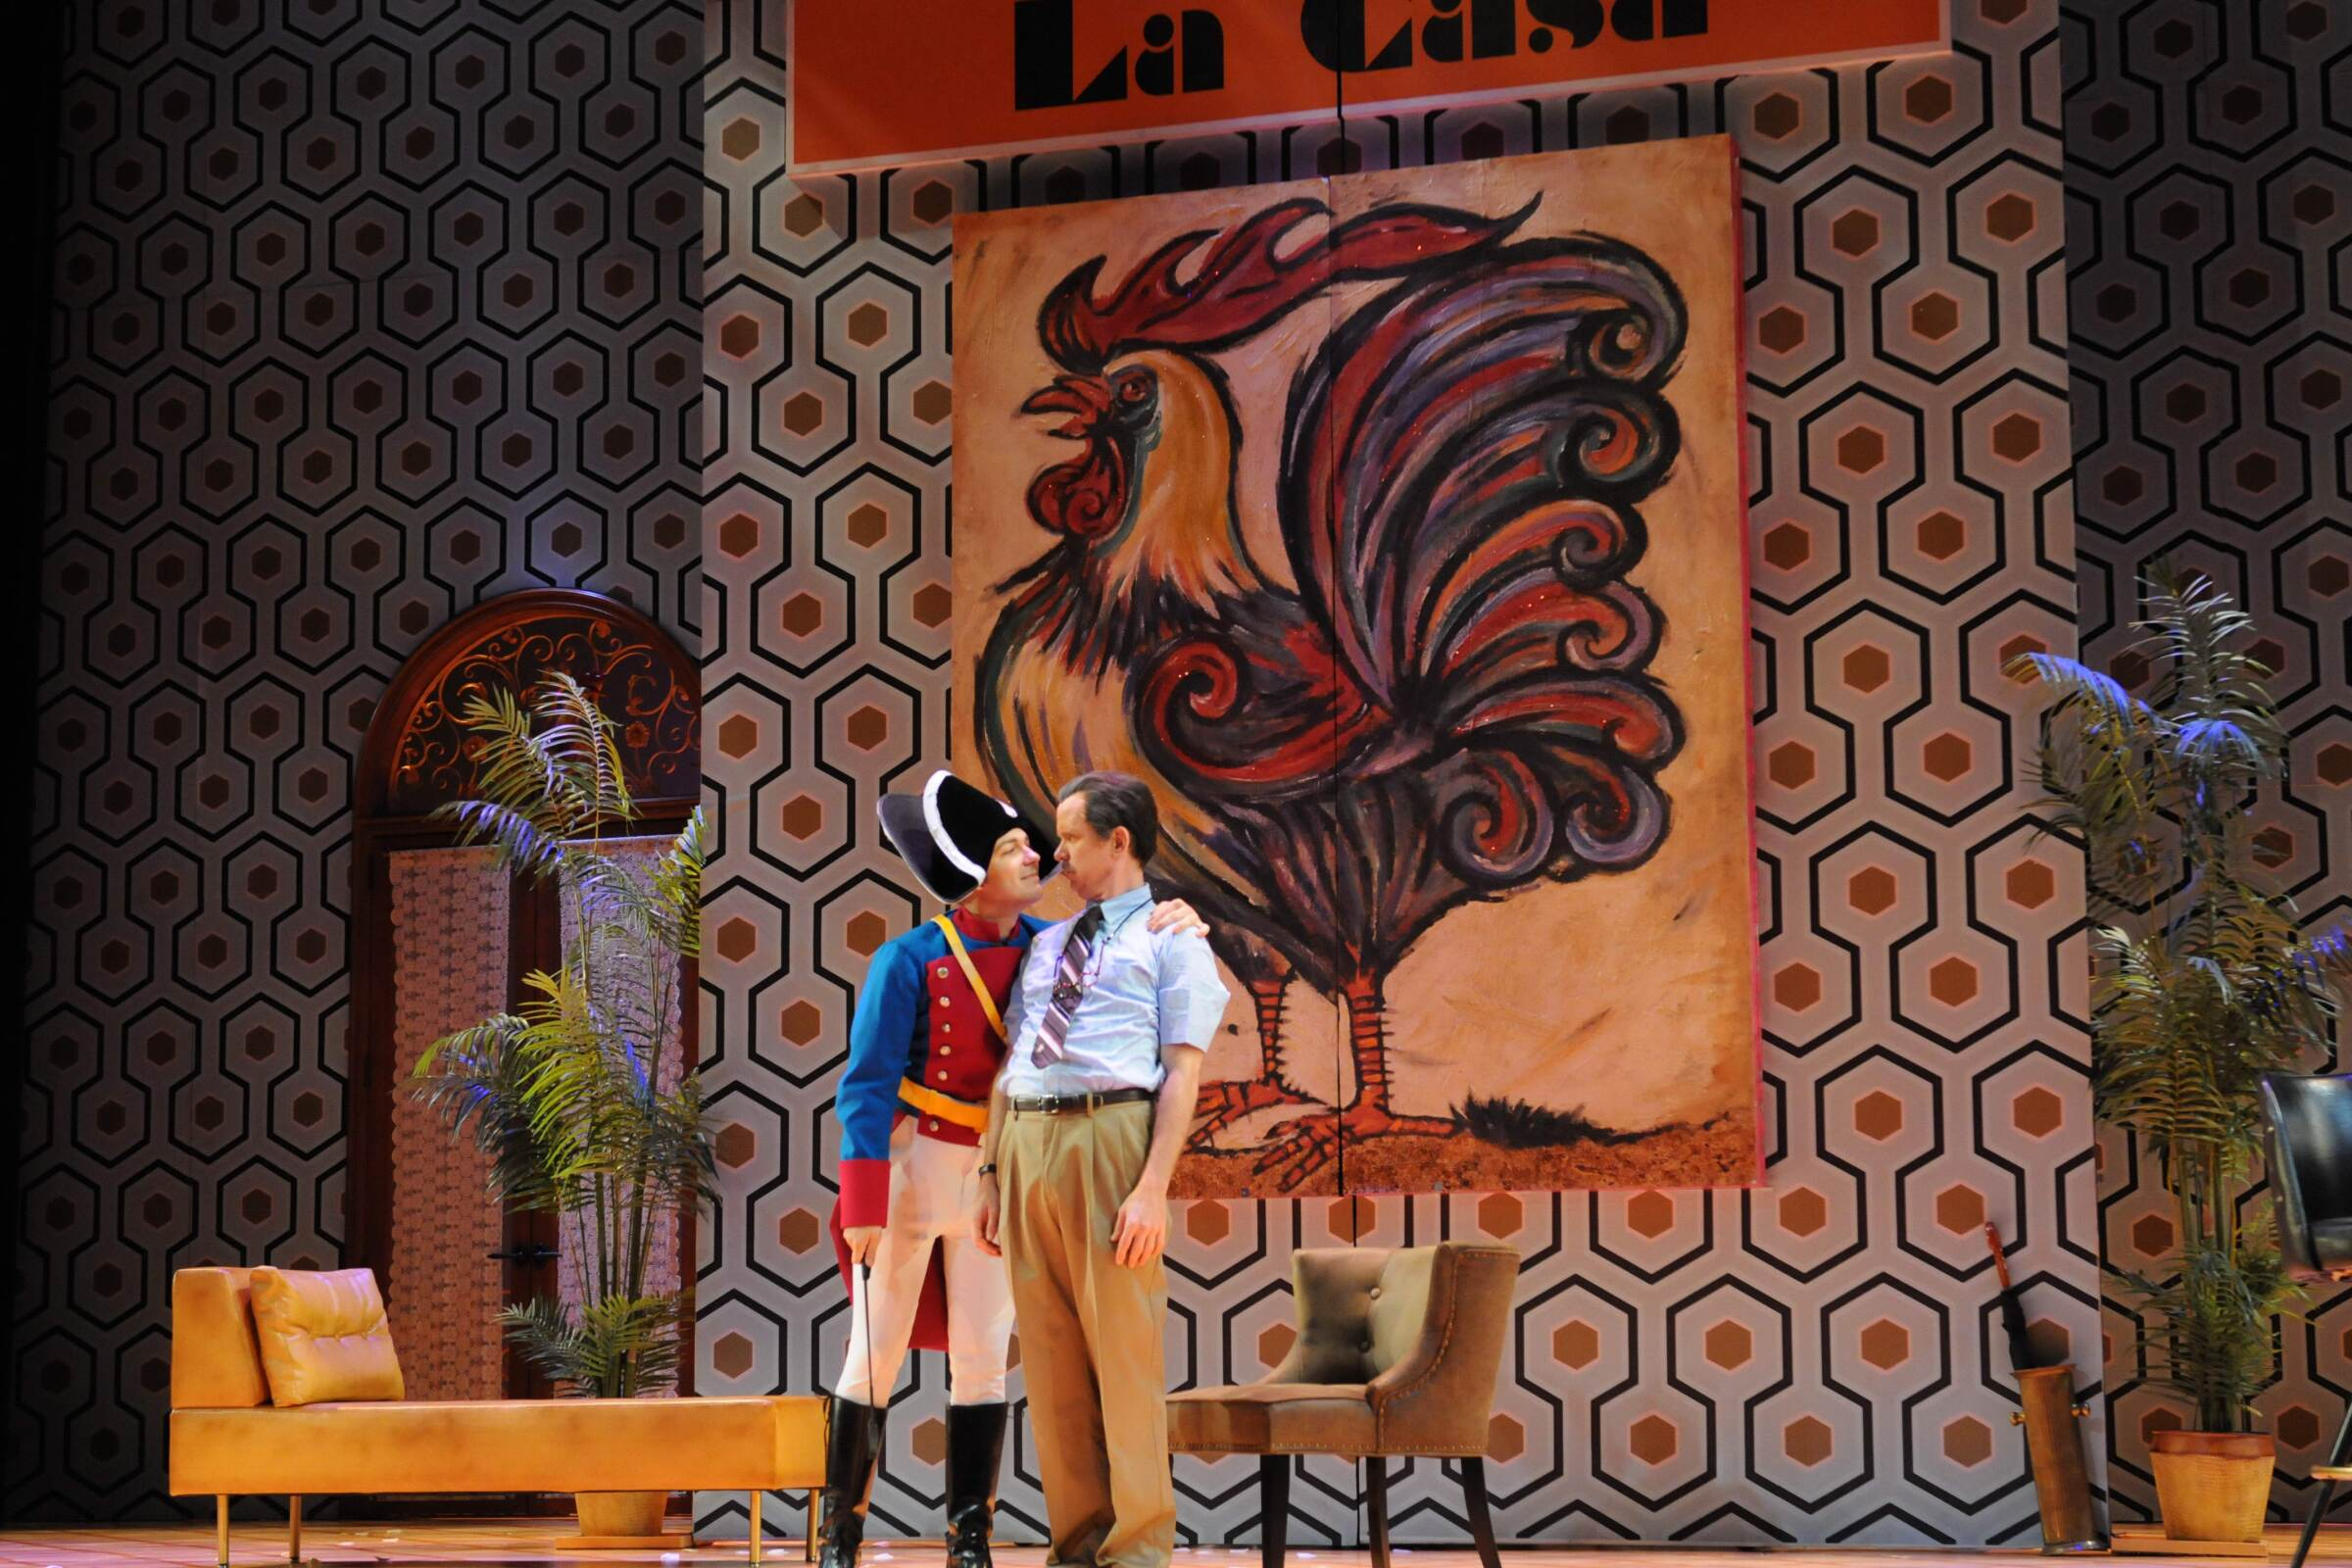 """On April 25, San Diego Opera will open a new production of Gioachino Rossini's """"The Barber of Seville"""" that's inspired by the films of Spanish director Pedro Almodóvar."""